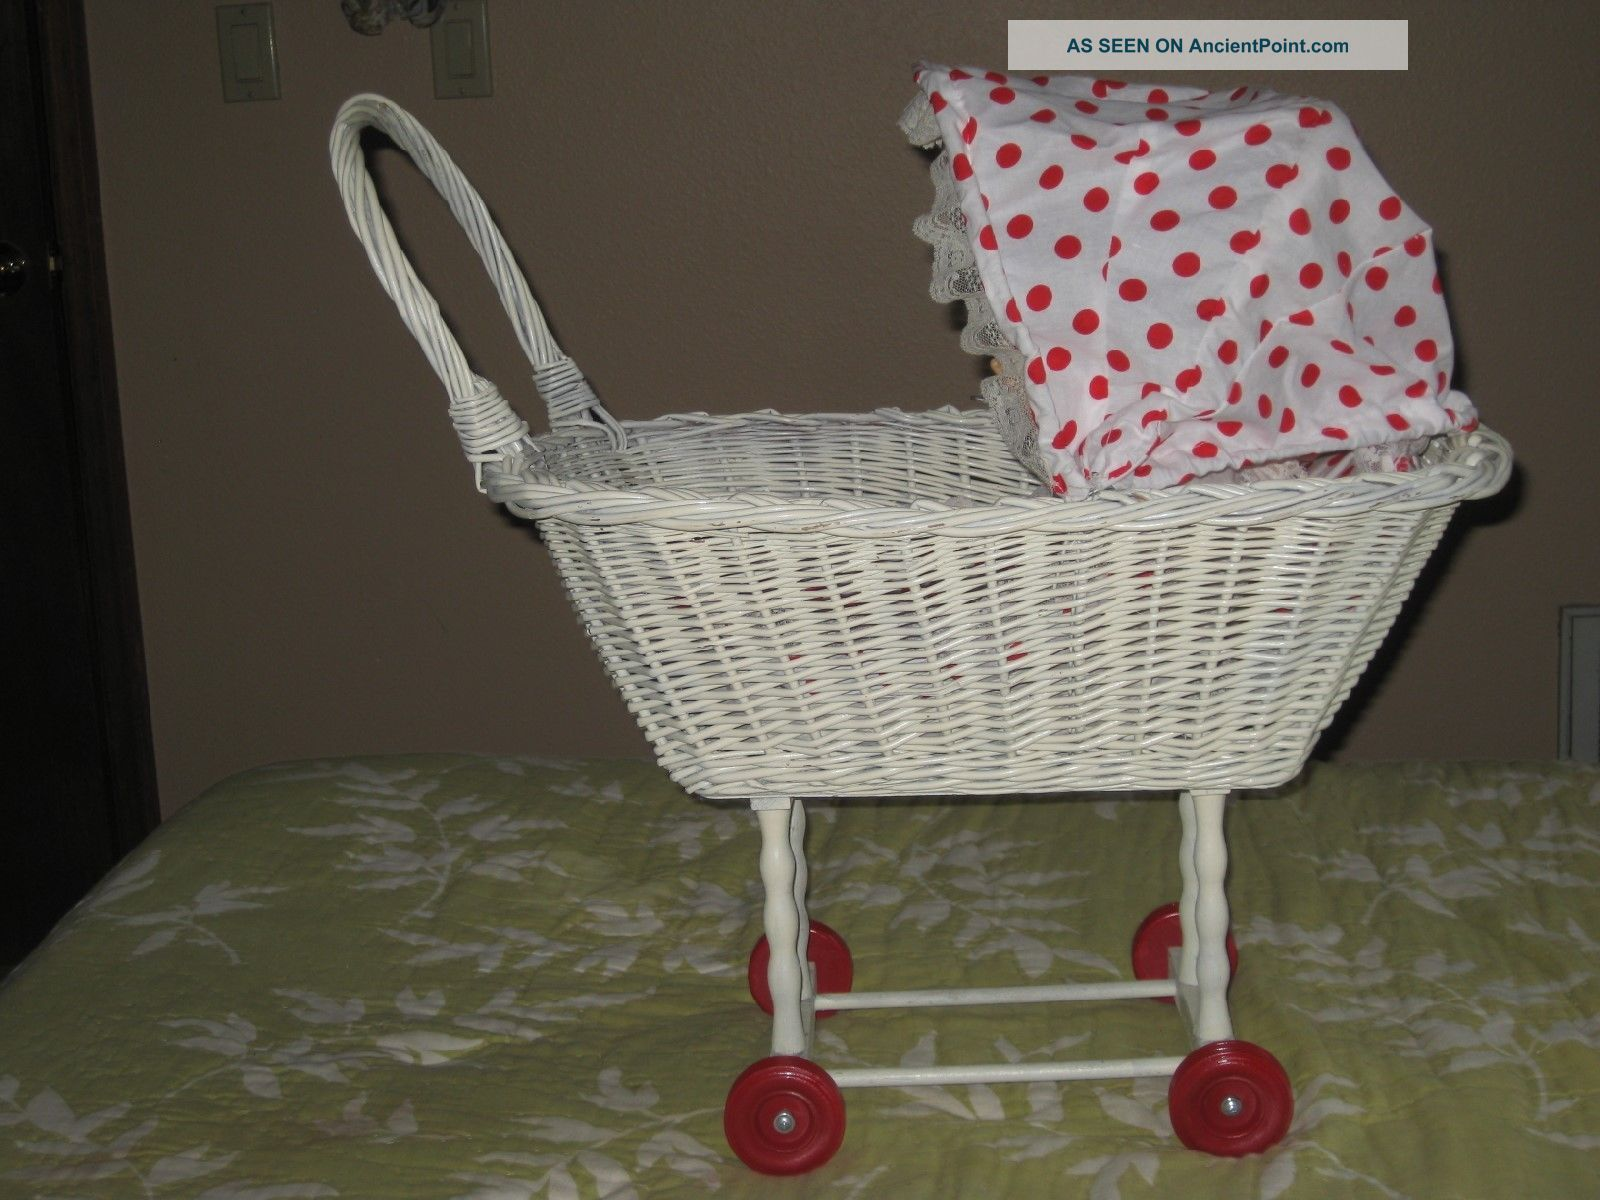 Vintage Wicker Babydoll Stroller/carriage Baby Carriages & Buggies photo